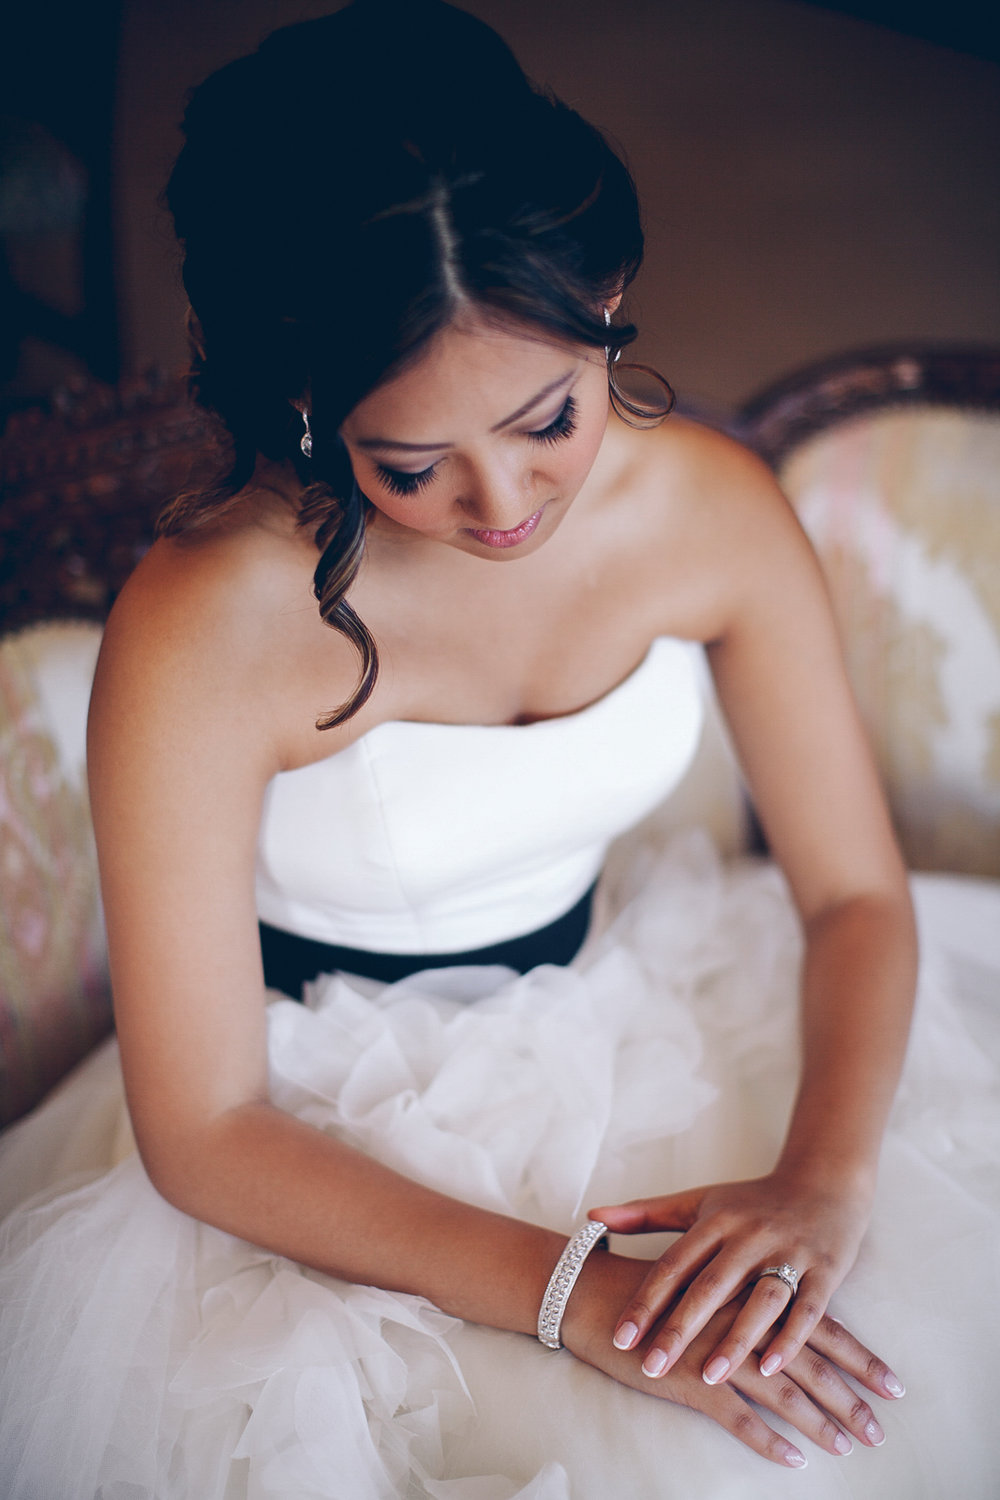 kohl_mansion_wedding_photography_samantha_gene_ebony_siovhan_bokeh_photography_015.jpg